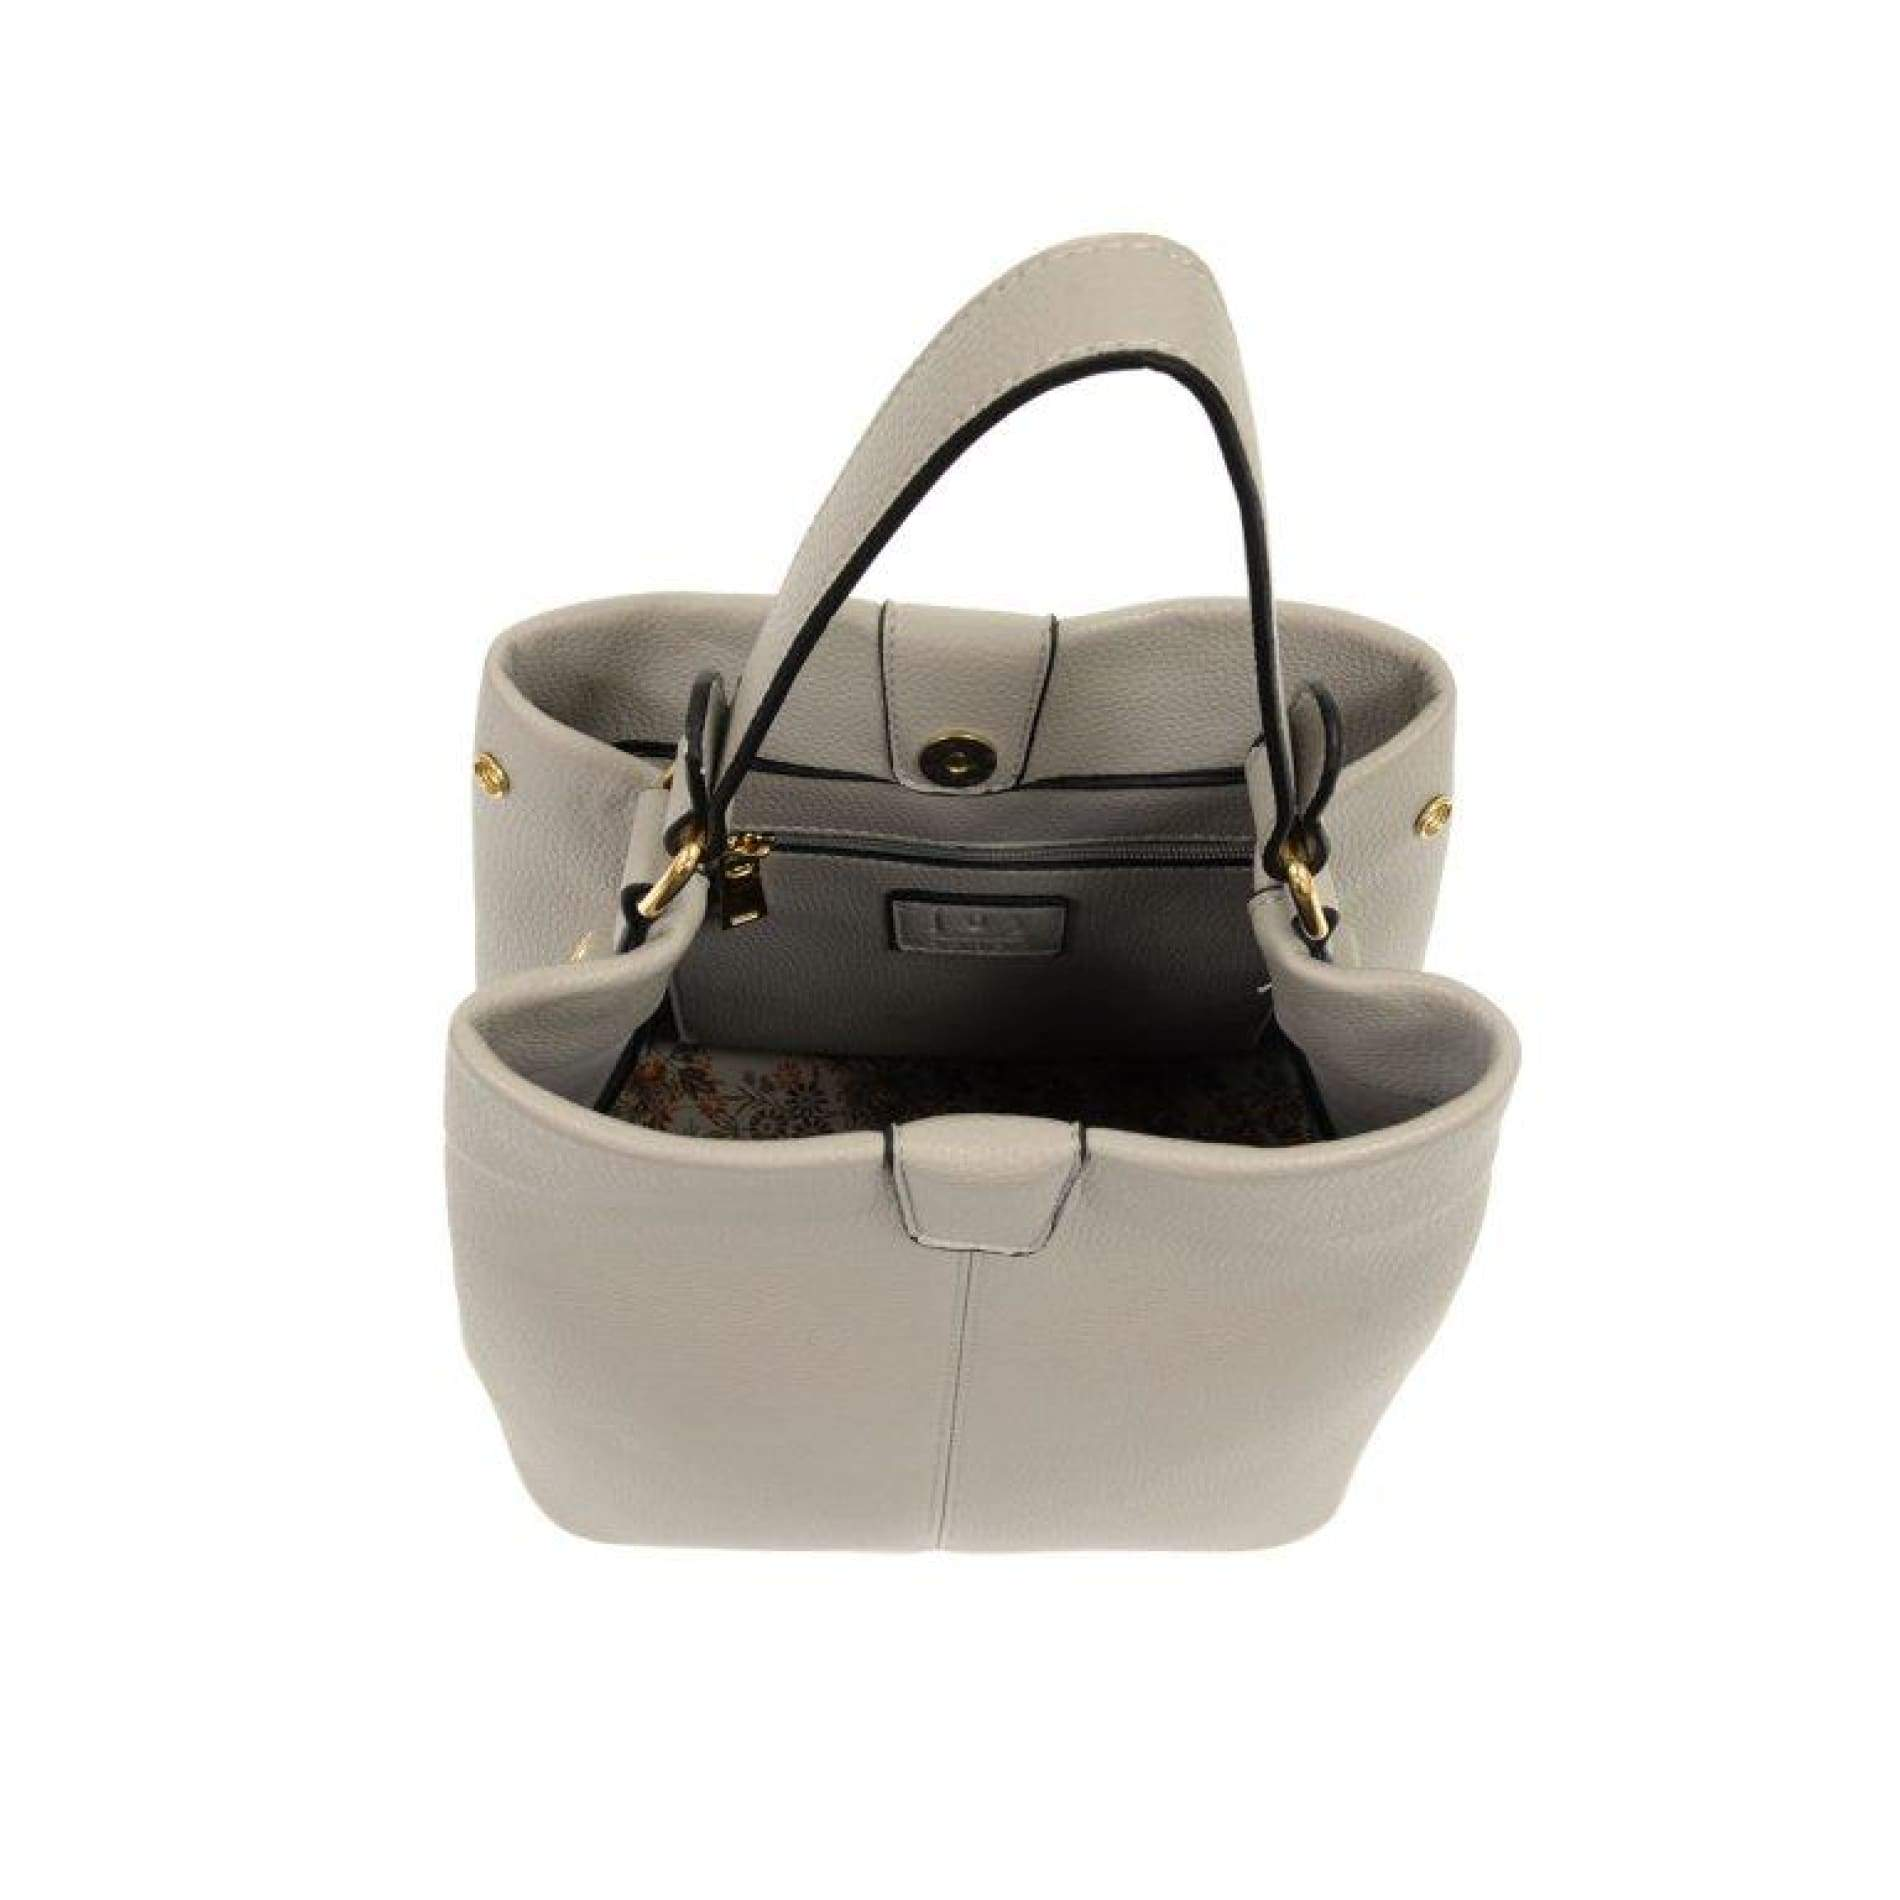 Ava Convertible Shoulder Bag - Accessories